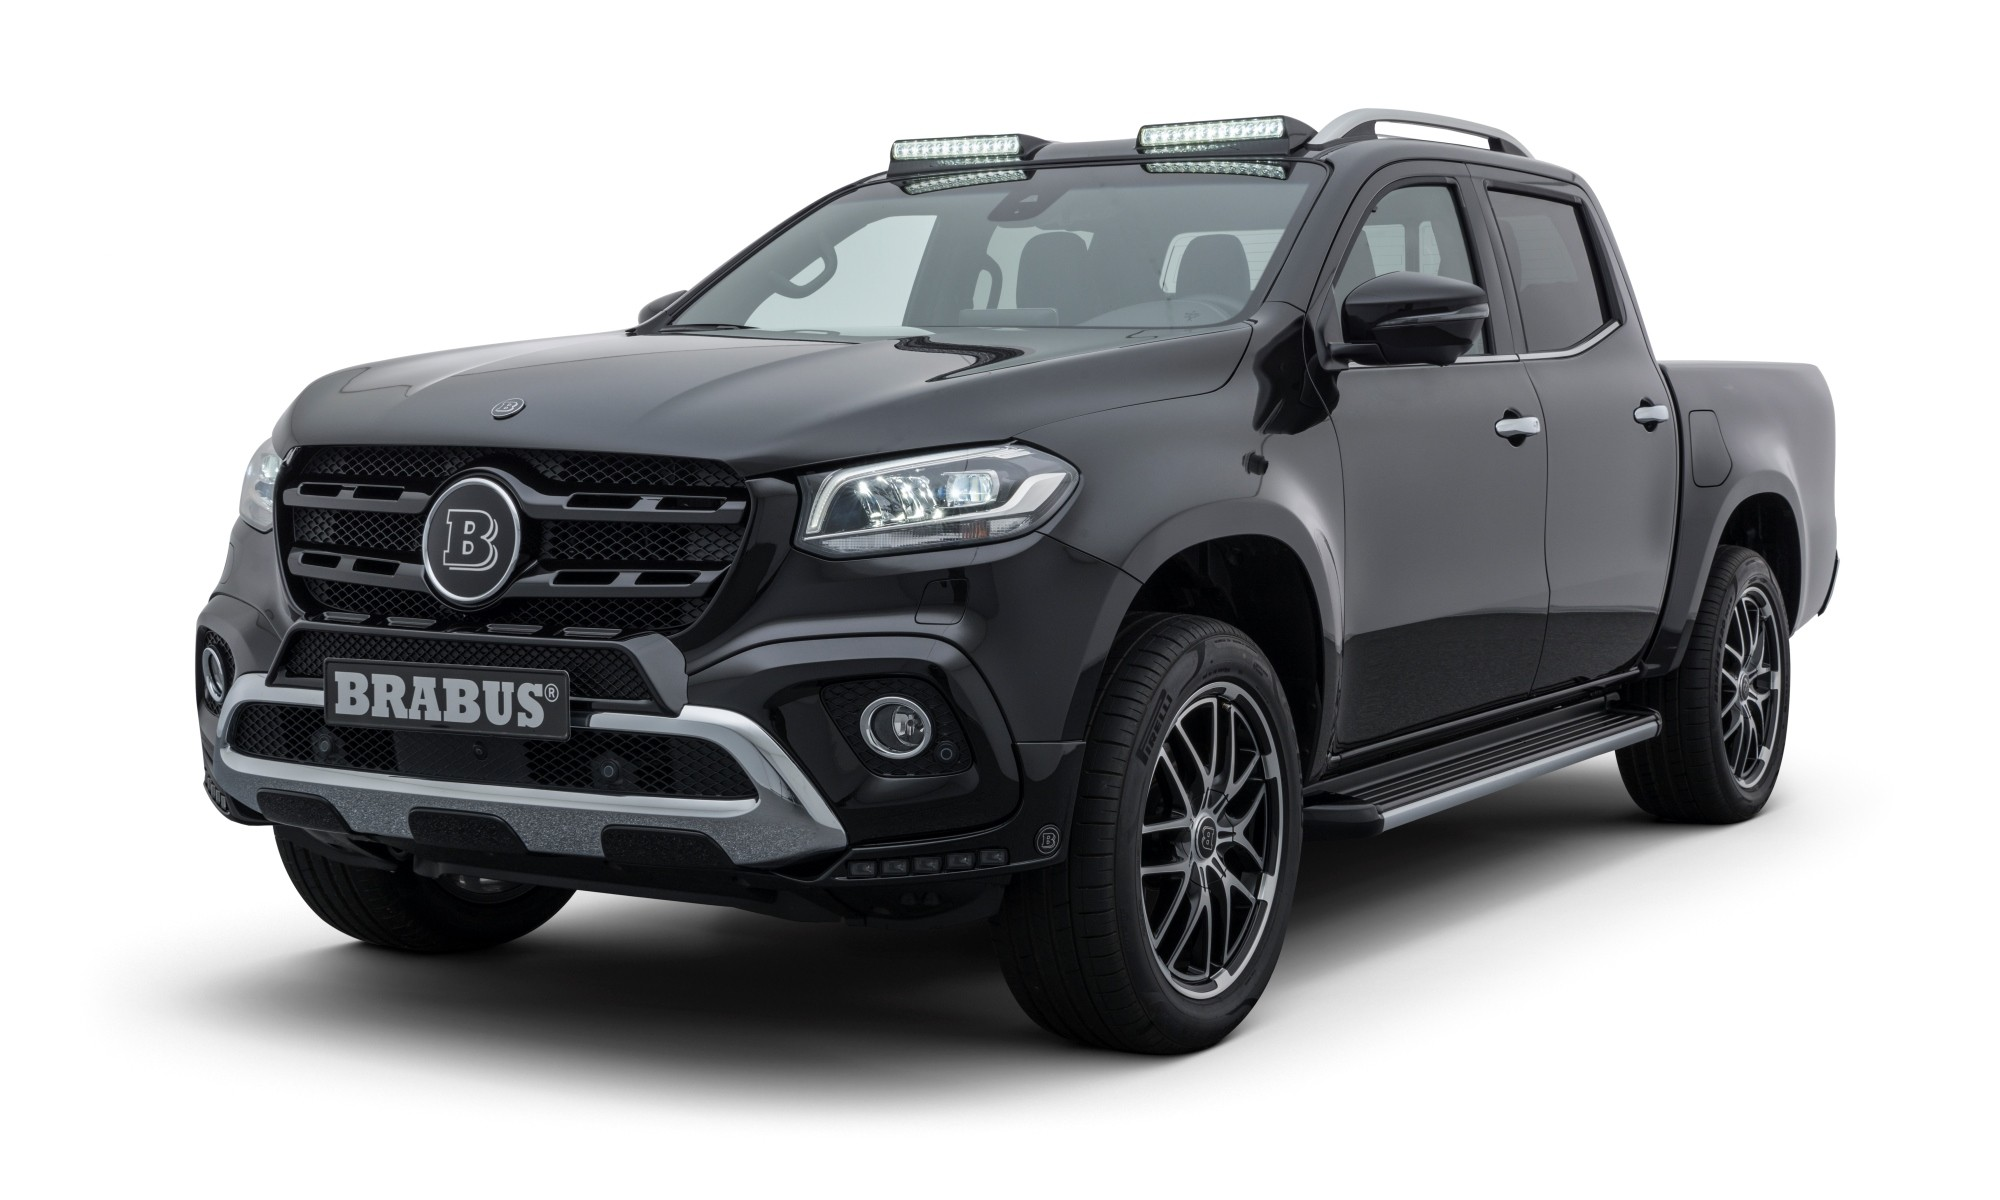 Brabus refines the Mercedes X-class